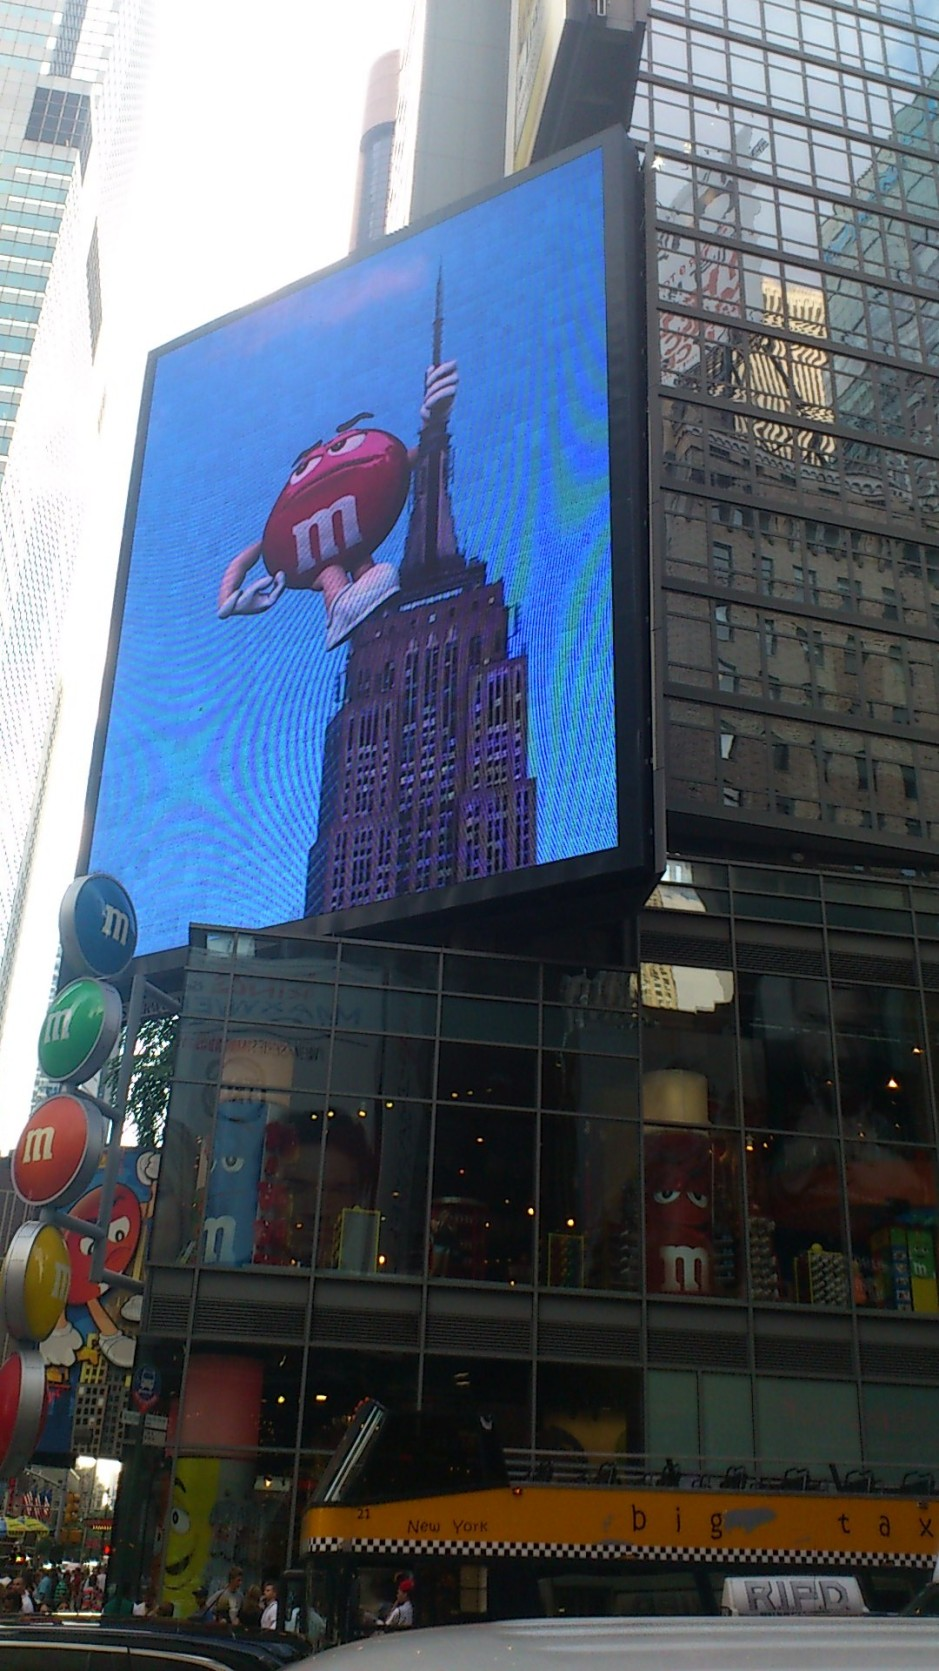 The red M & M's chocolate cartoon character climbs the Empire State Building. All displayed on a huge video screen at the M & M's World in Times Square, New York City